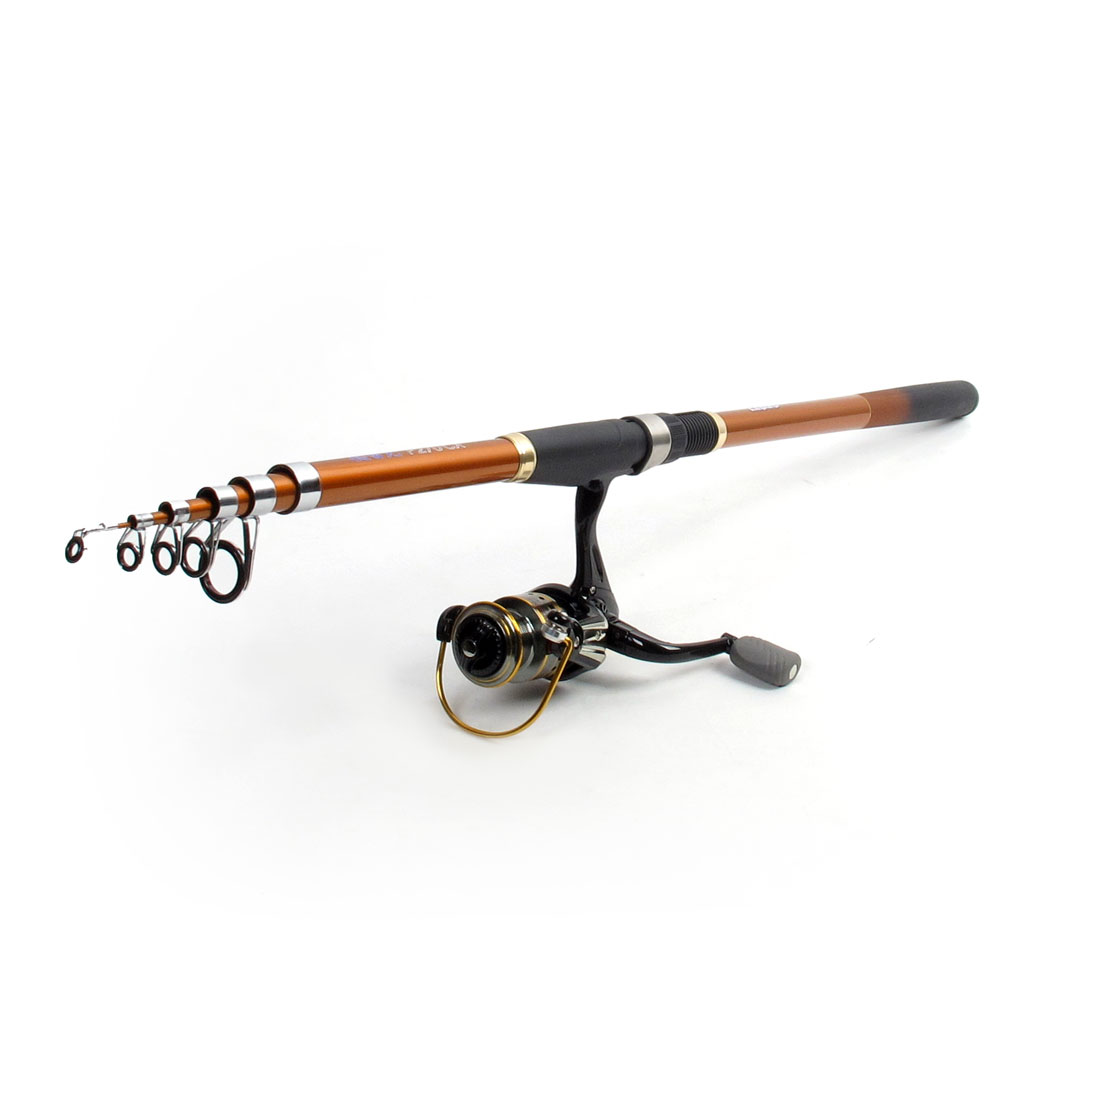 Portable 2.65M 6 Sections Telescopic Fishing Spinning Rod Black Orange Red